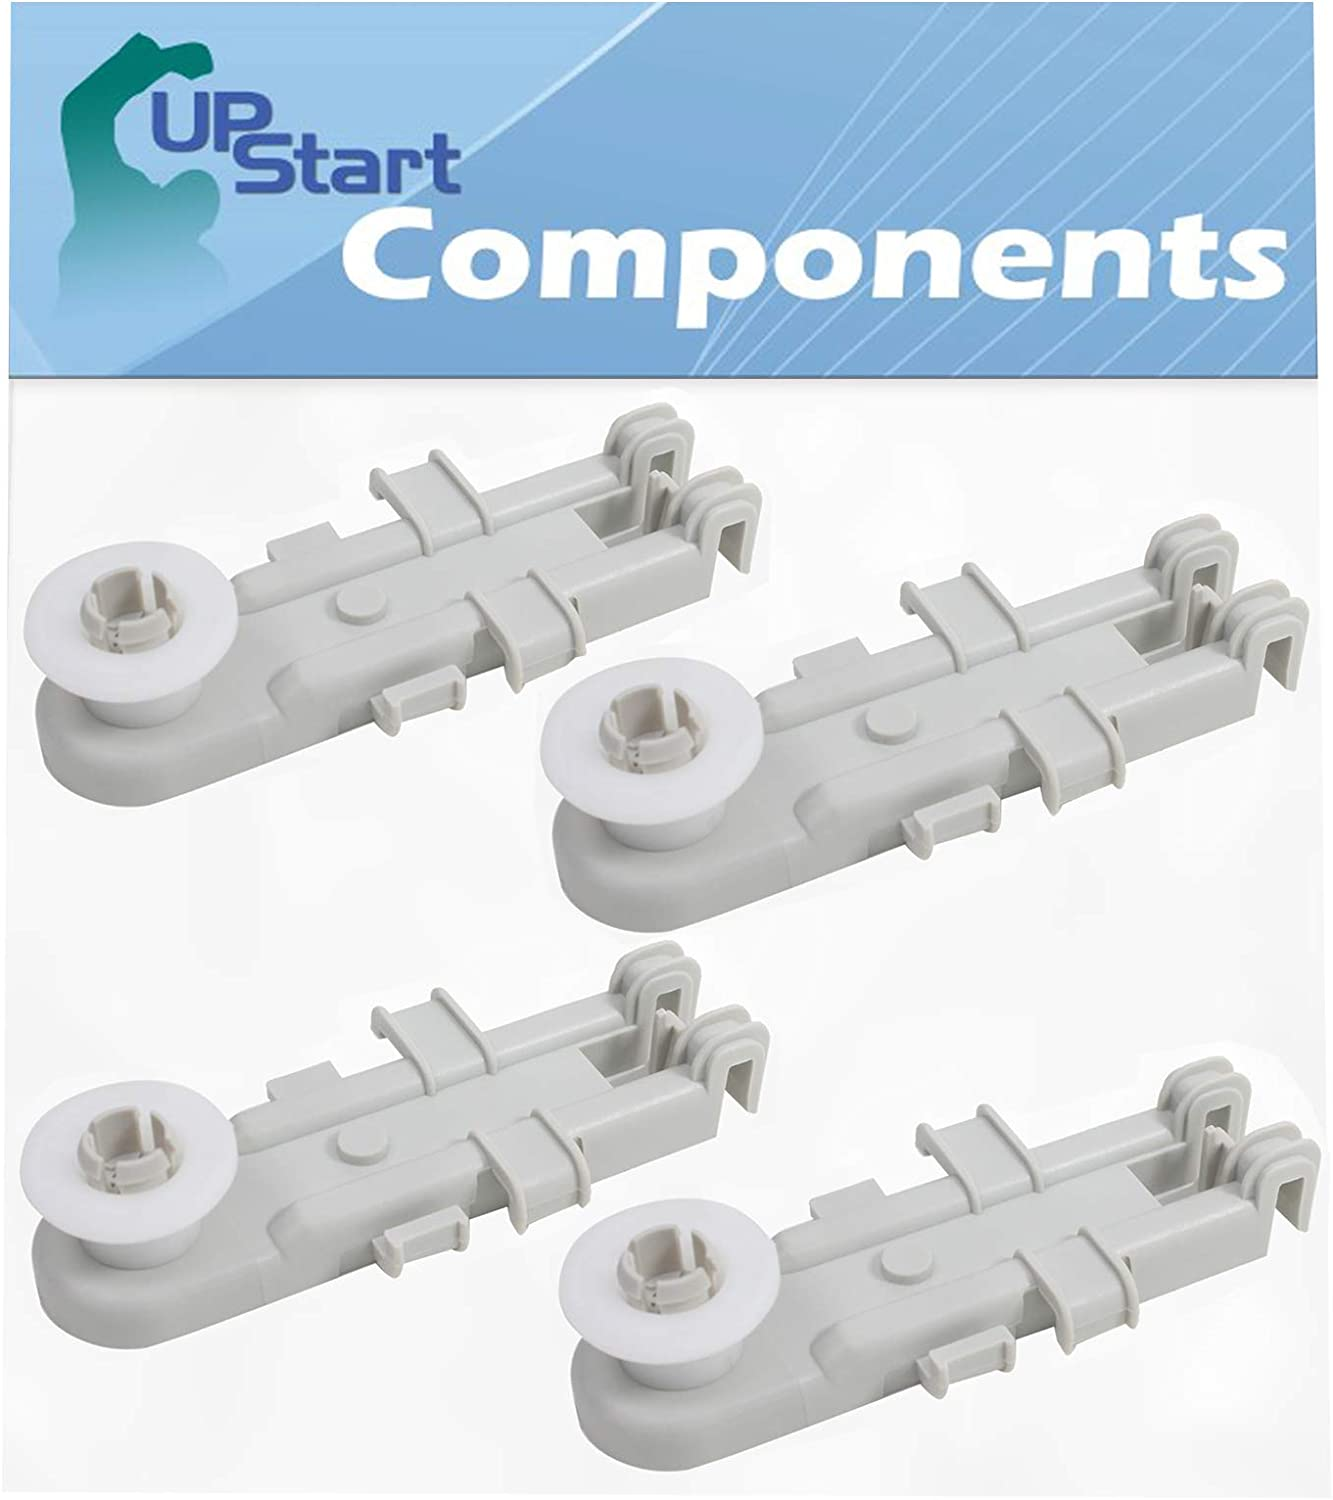 4-Pack 8268655 Dishwasher Upper Rack Wheel Replacement for Whirlpool DU1055XTSS2 - Compatible with 8268655 Wheel Kit